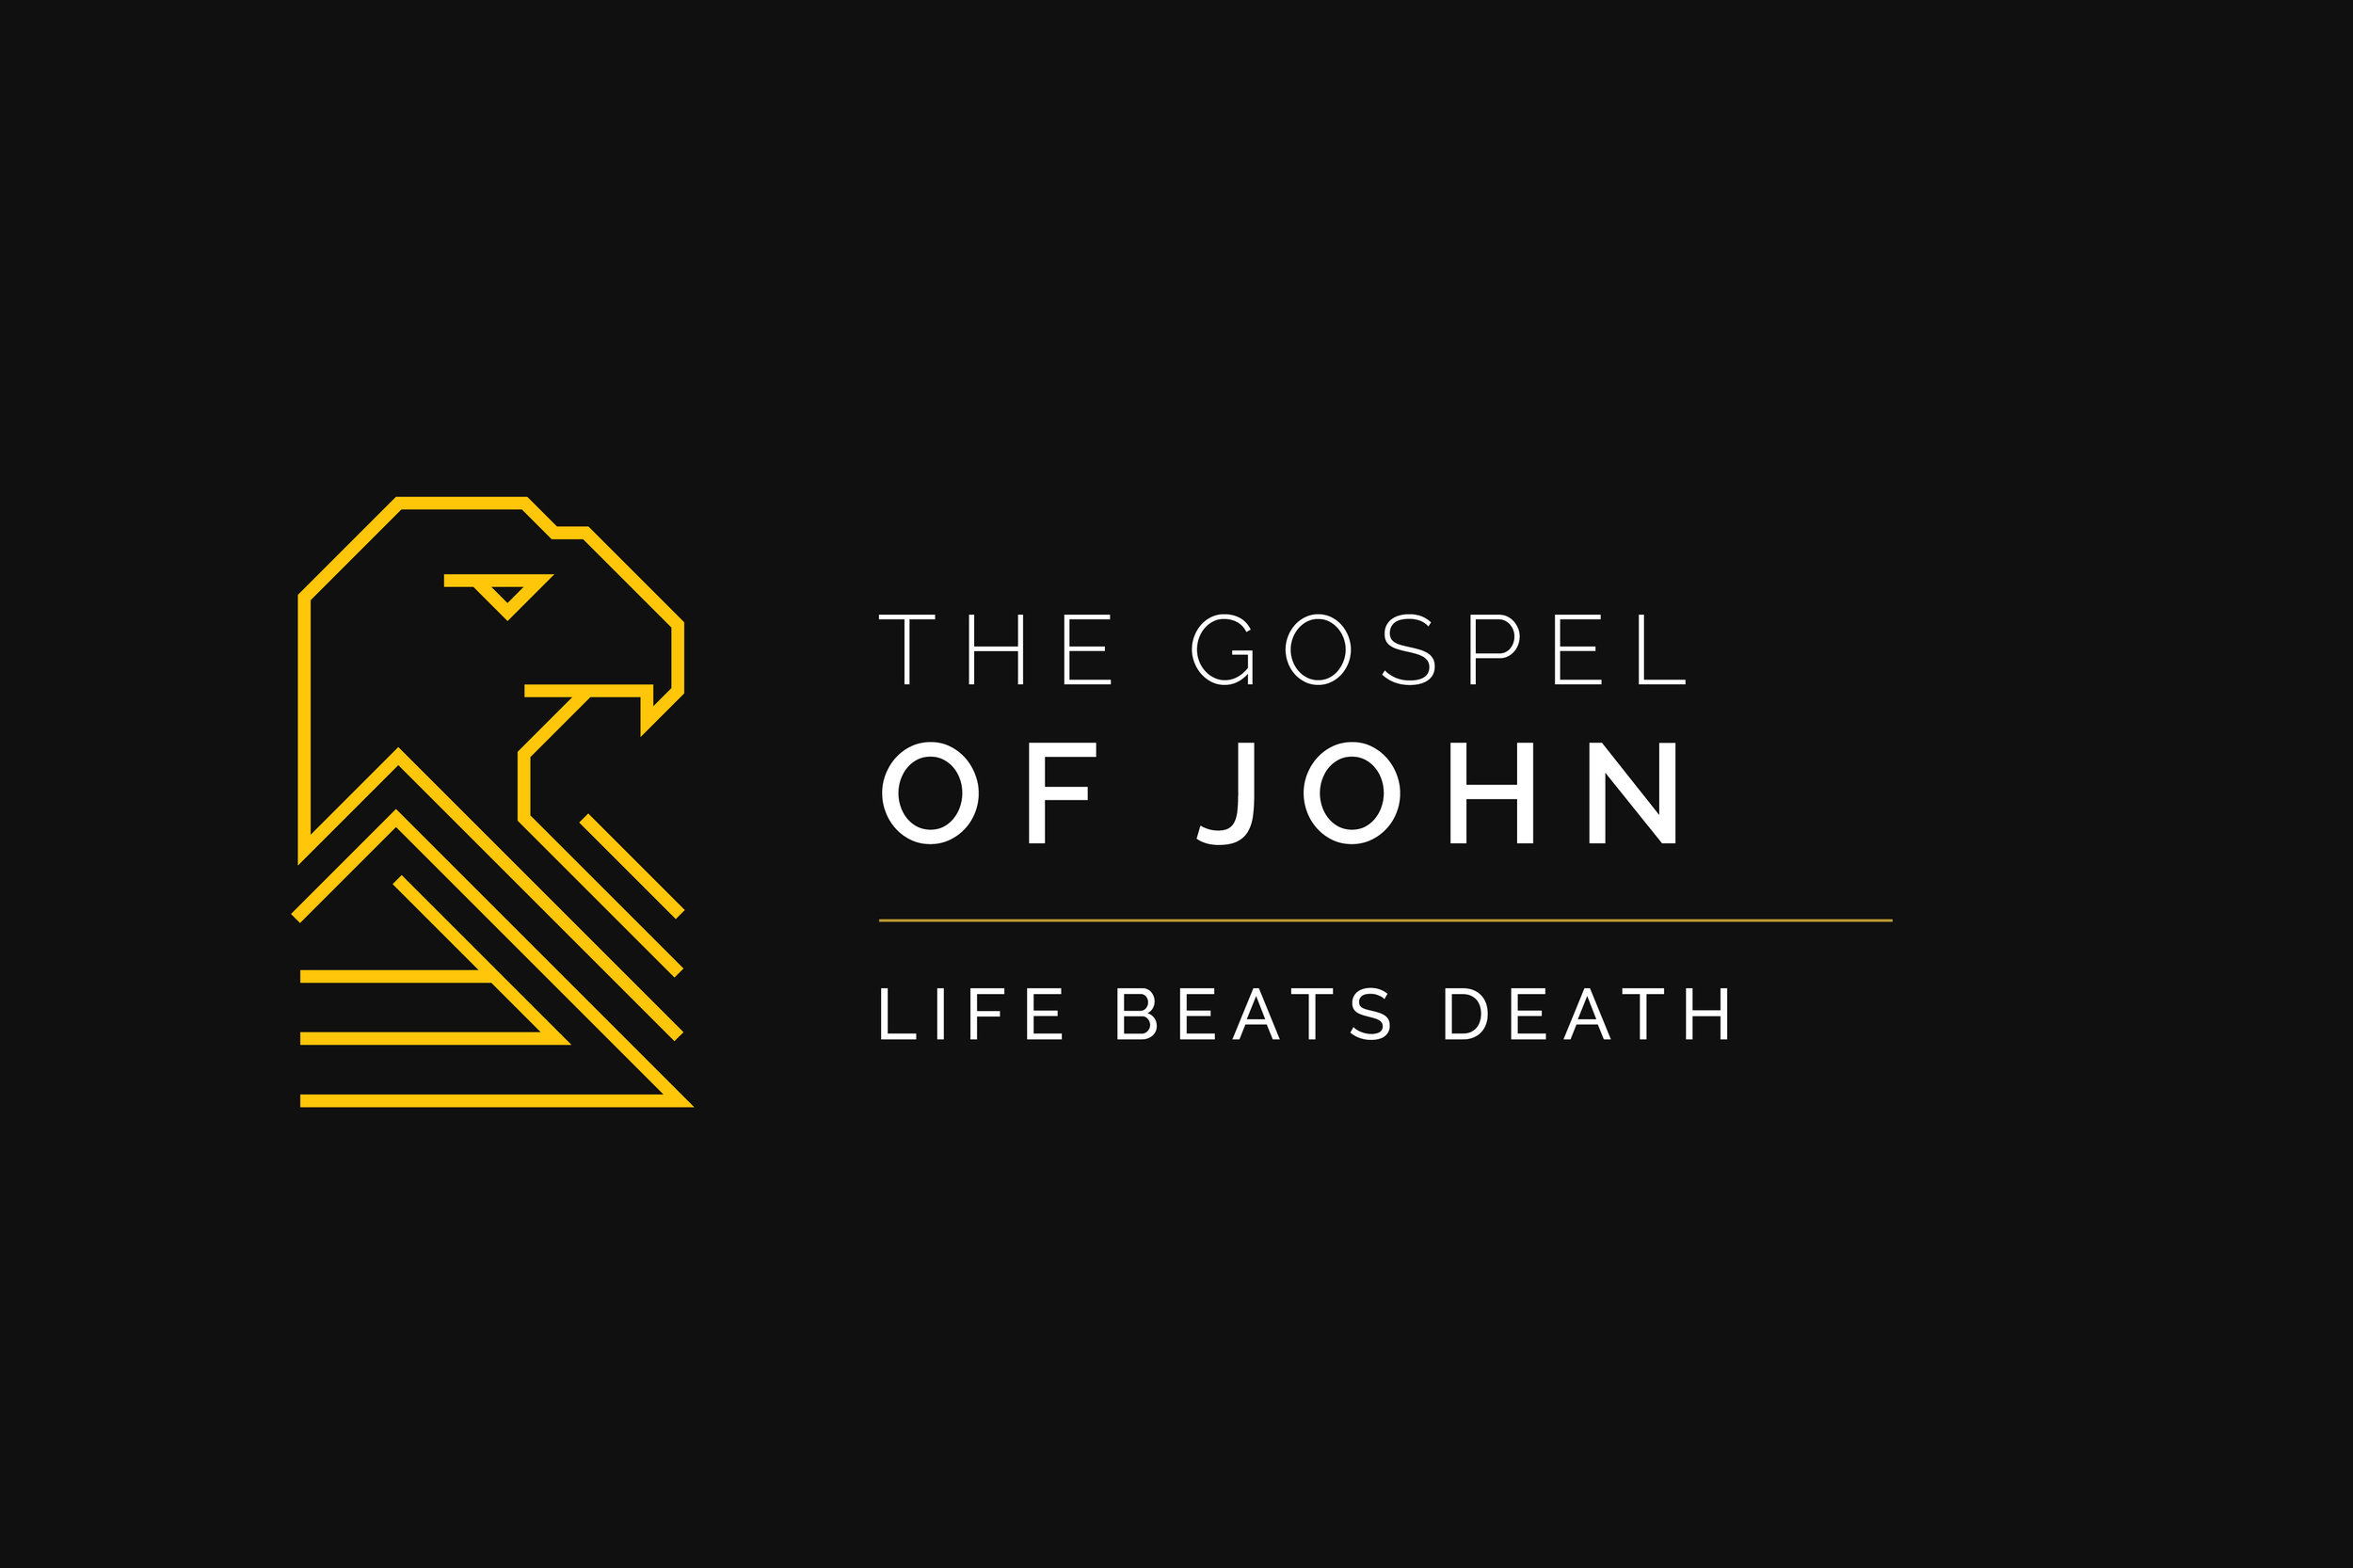 The-Gospel-of-John-LIFE-BEATS-DEATH.jpg